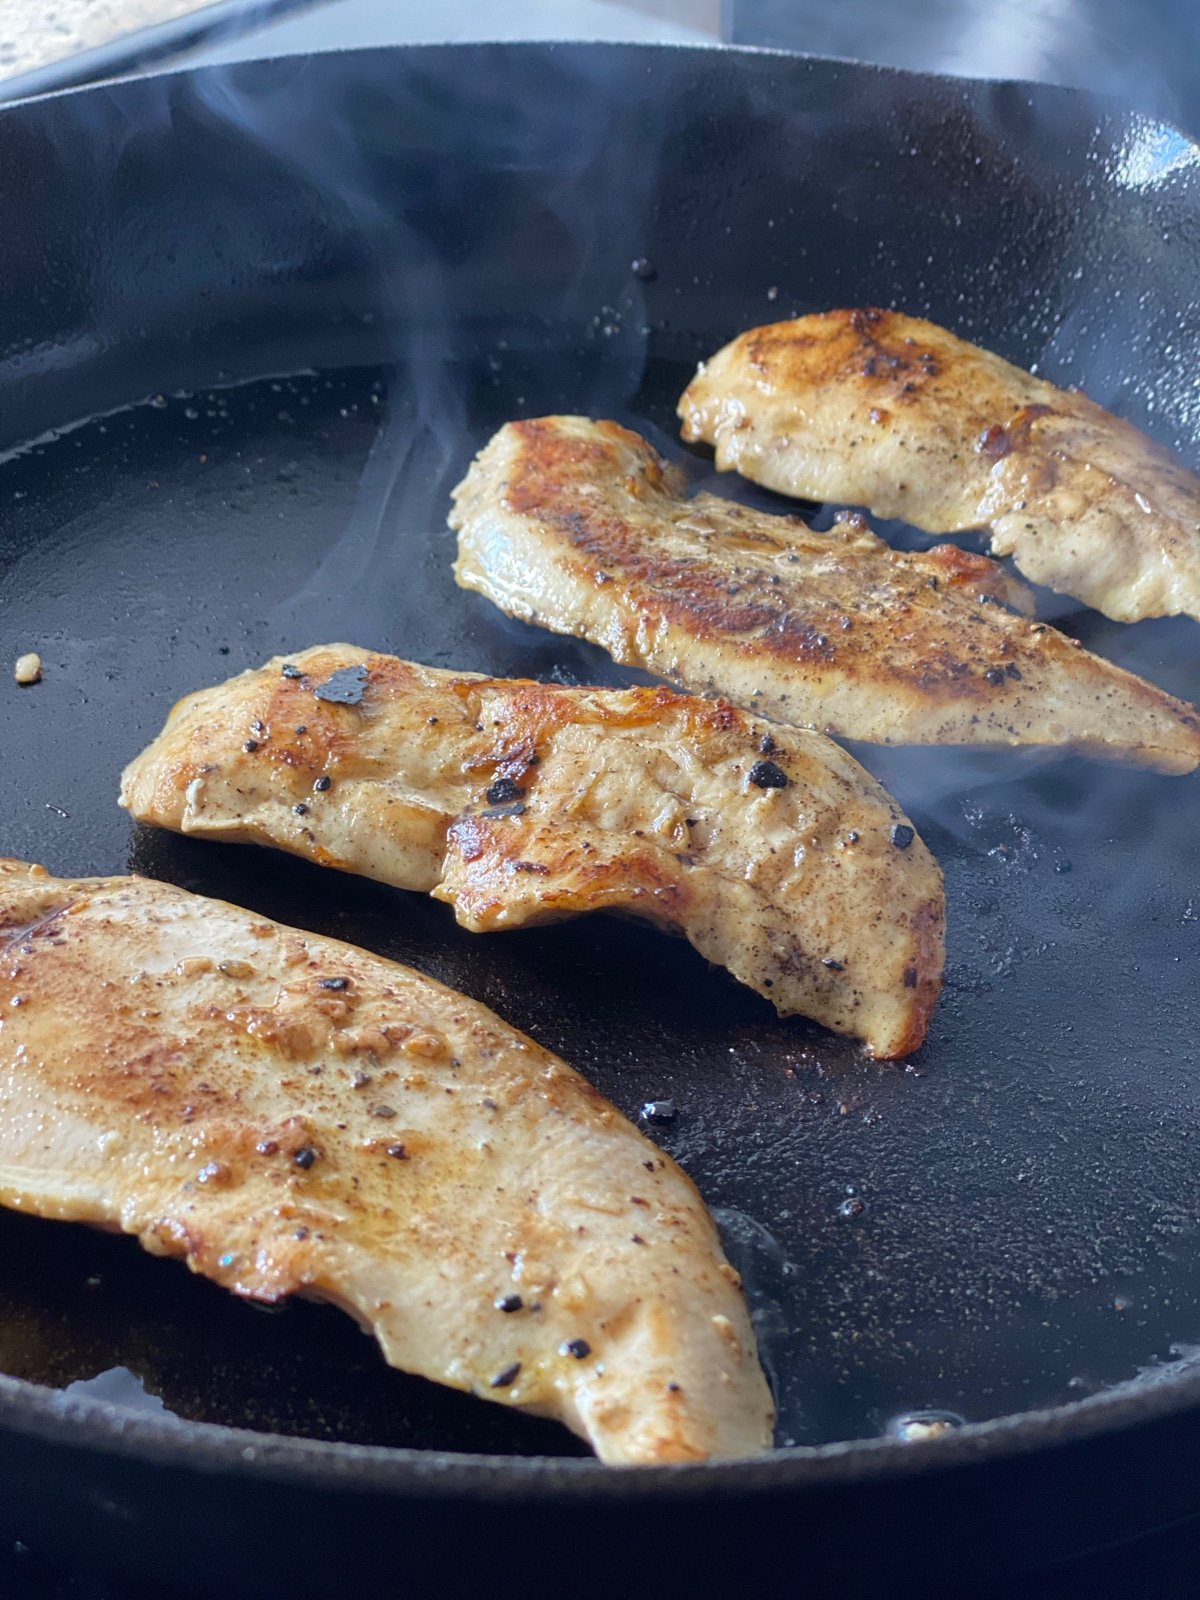 sous vide chicken breast tenders searing in a cast iron pan